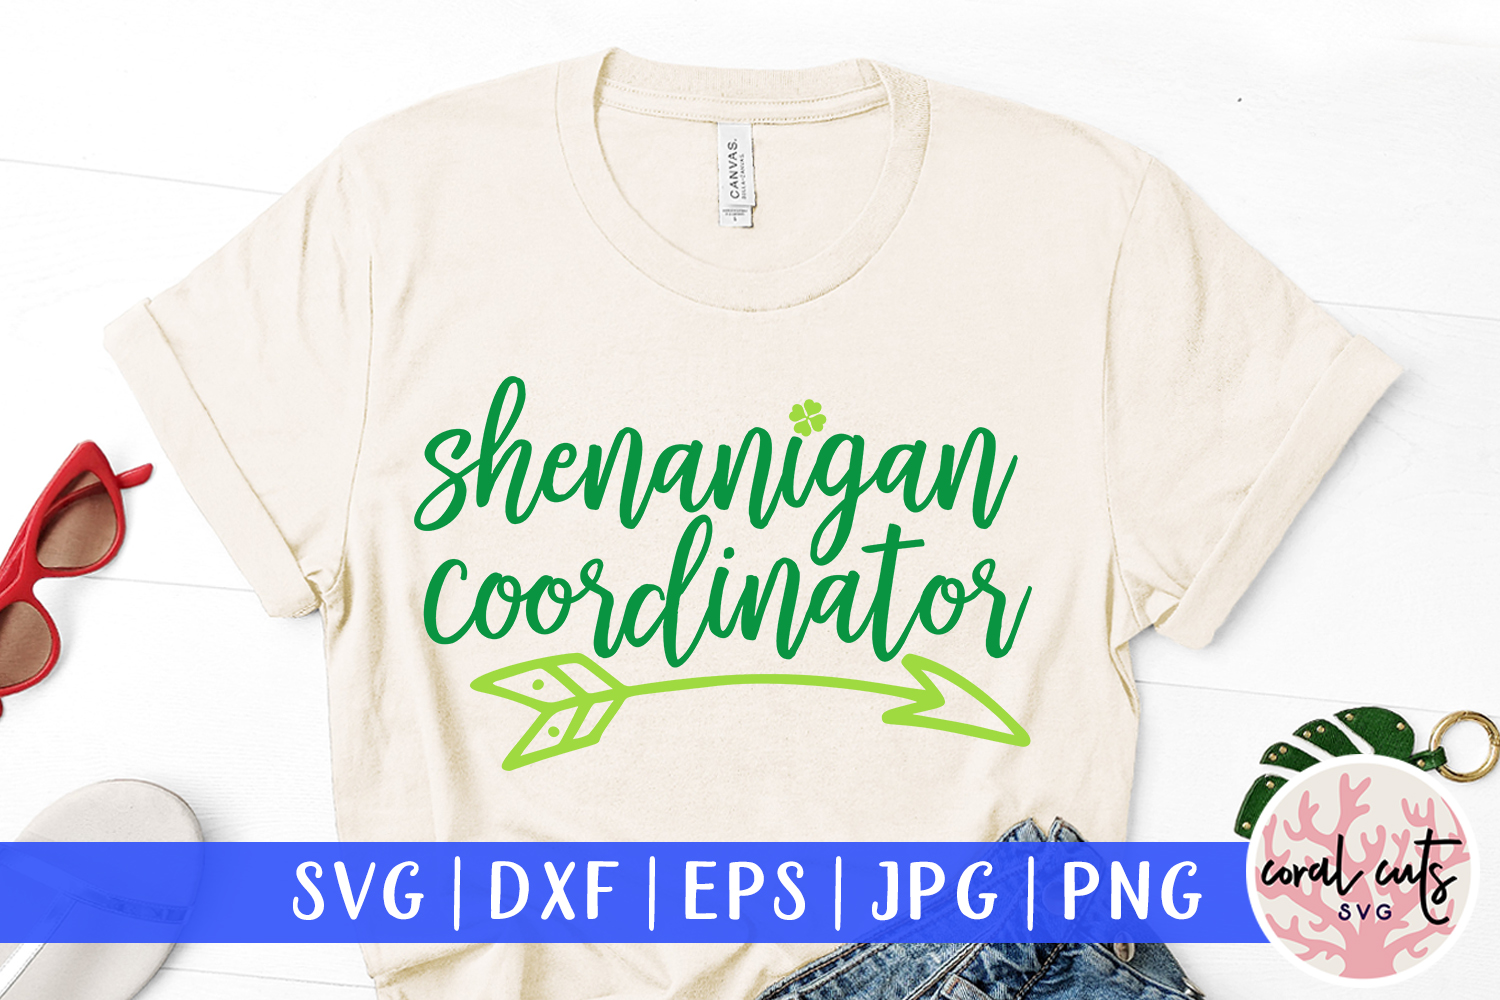 Shenanigan coordinator - St. Patrick's Day SVG EPS DXF PNG example image 1